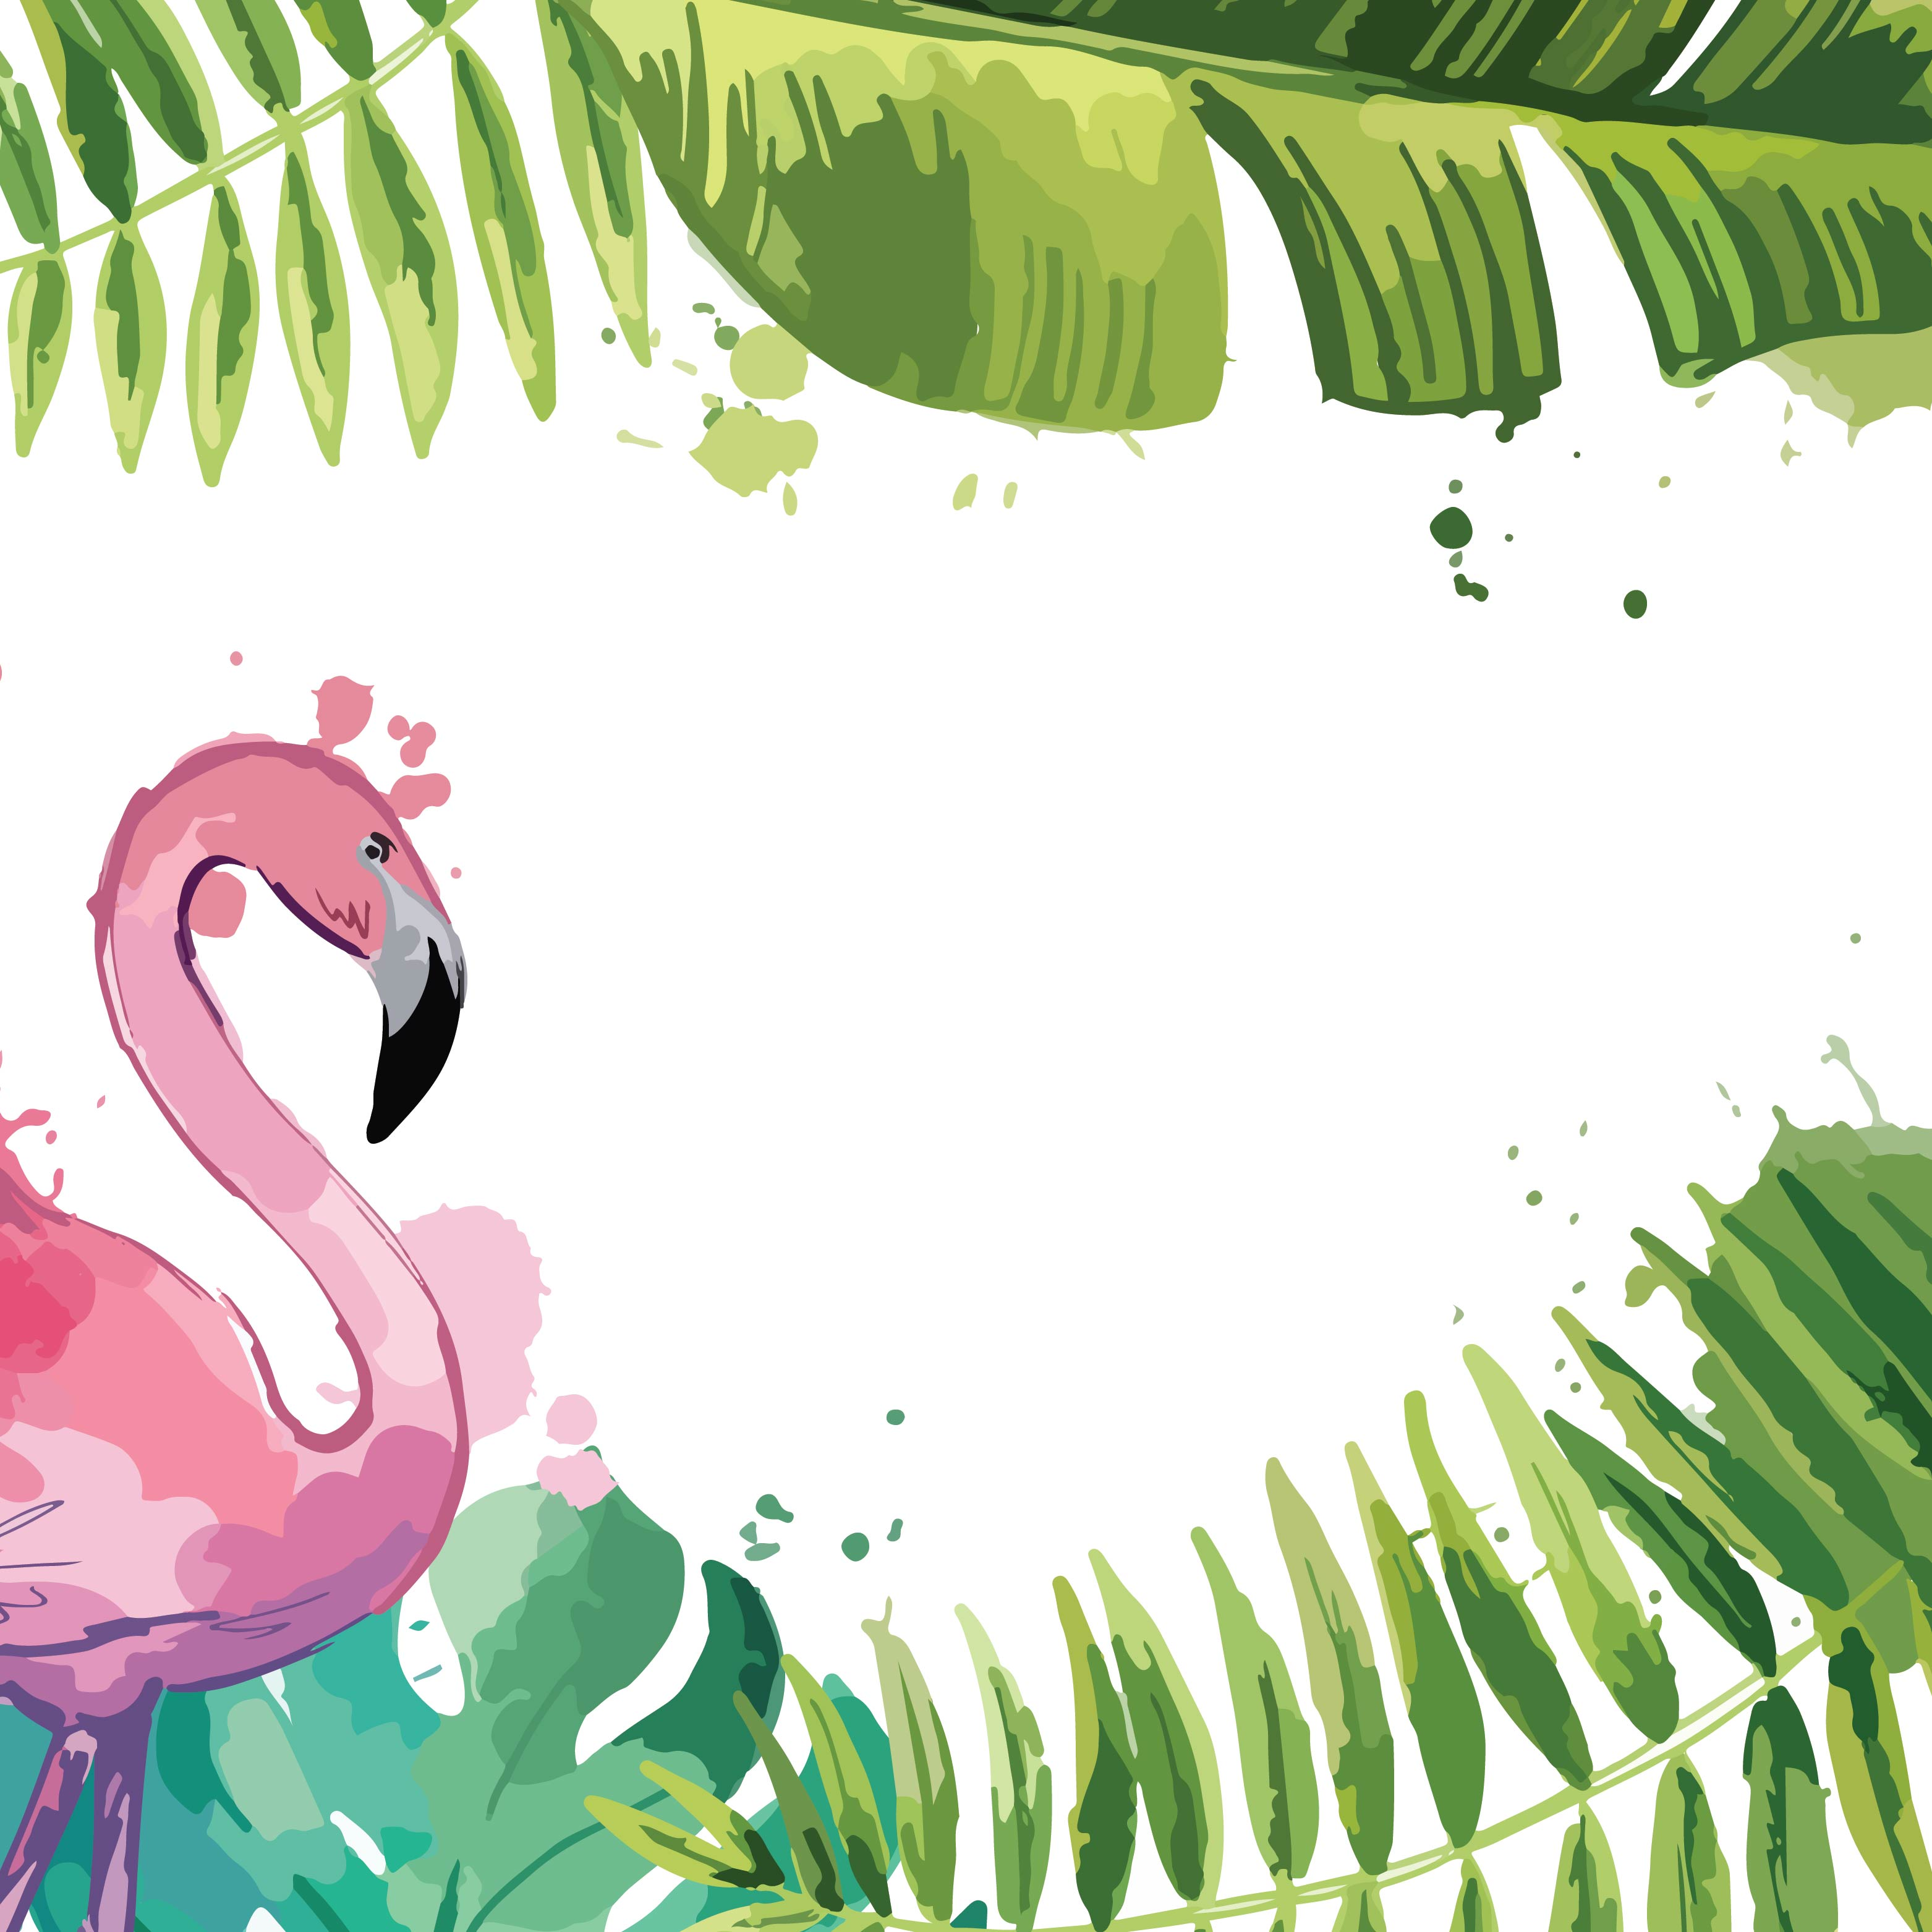 Background With Tropical Leaves And Flamingo Download Free Vectors Clipart Graphics Vector Art Find and download tropical backgrounds wallpapers, total 28 desktop background. tropical leaves and flamingo